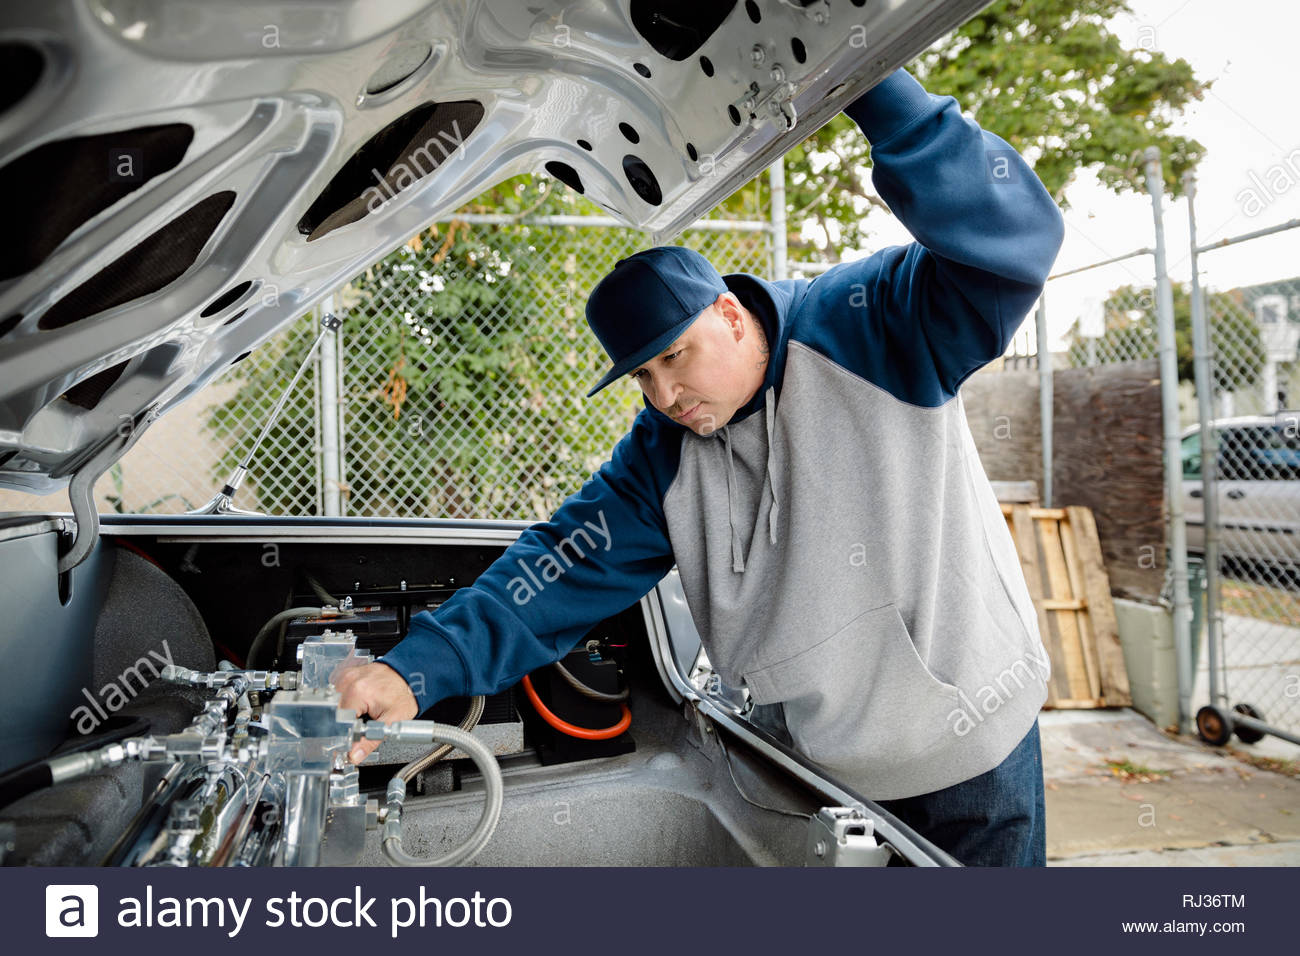 Latinx man checking hydraulics of low rider car in parking lot - Stock Image